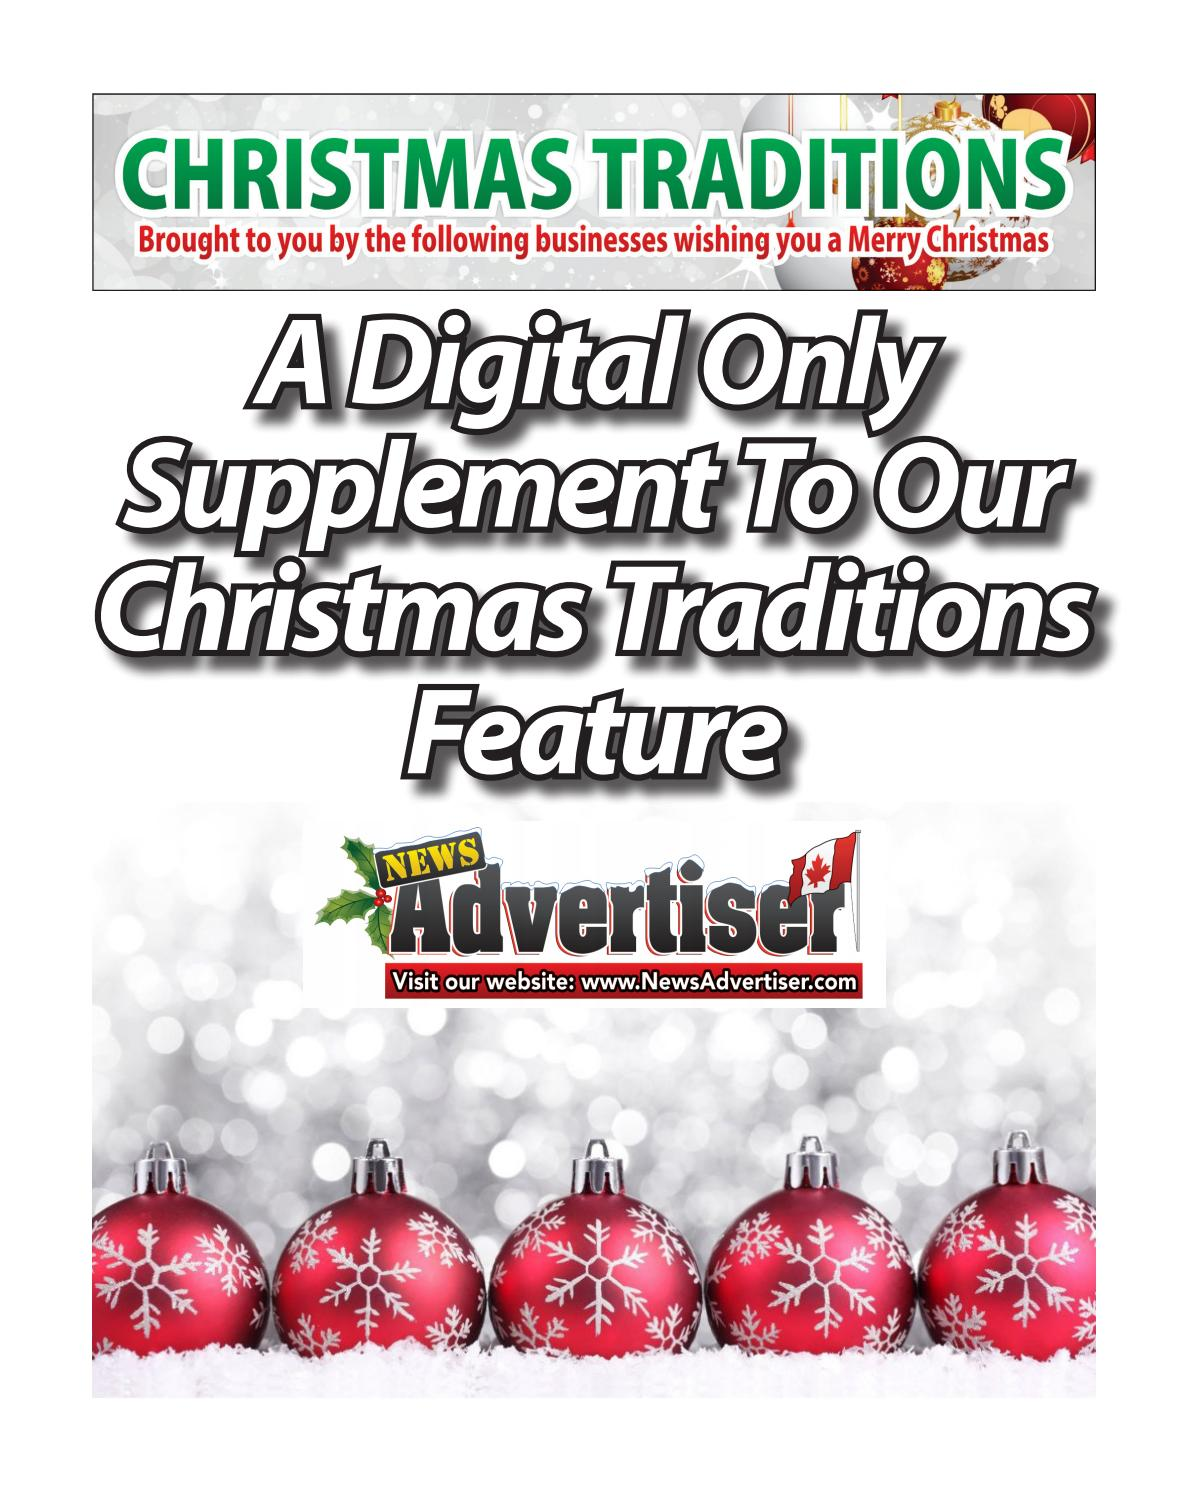 Christmas Traditions Extra - December 20, 2017 by The News ...